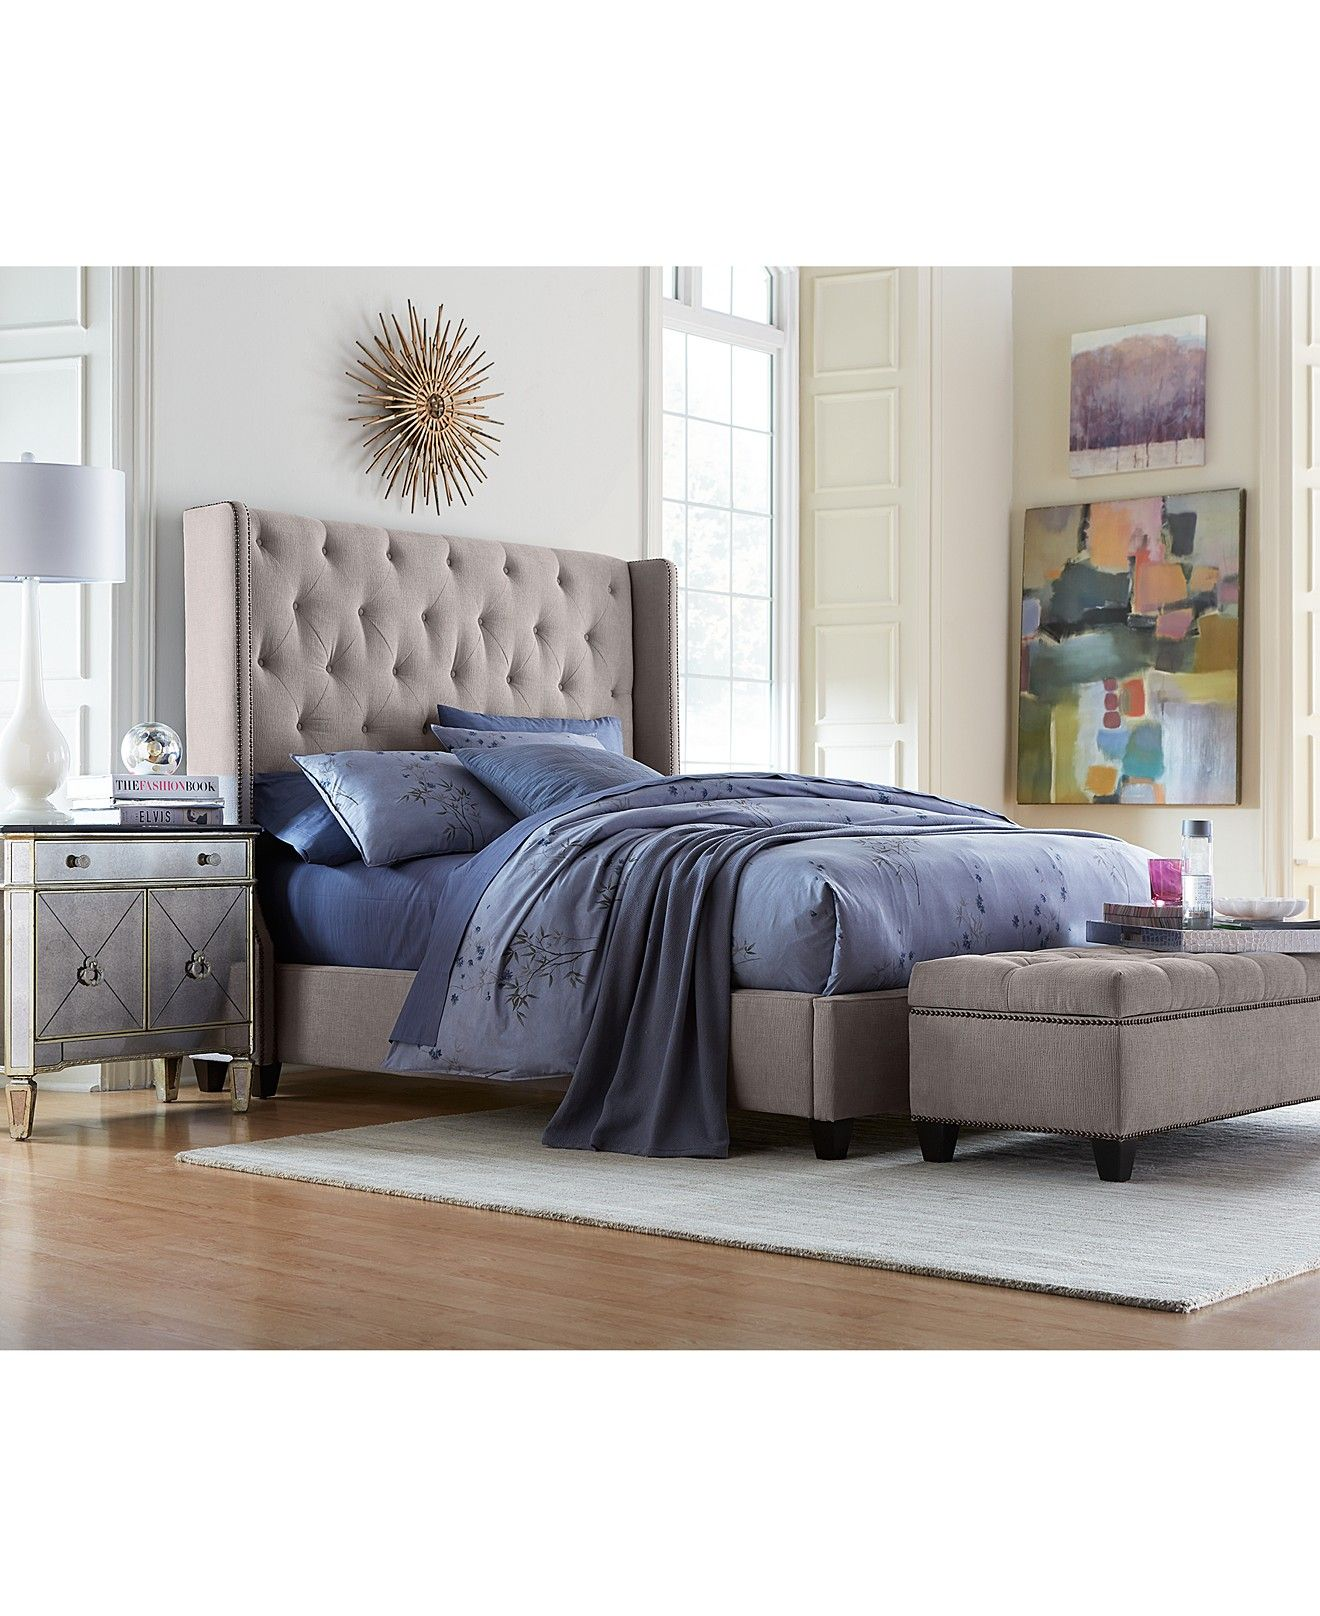 Rosalind Upholstered Bedroom Furniture   Furniture   Macyu0027s